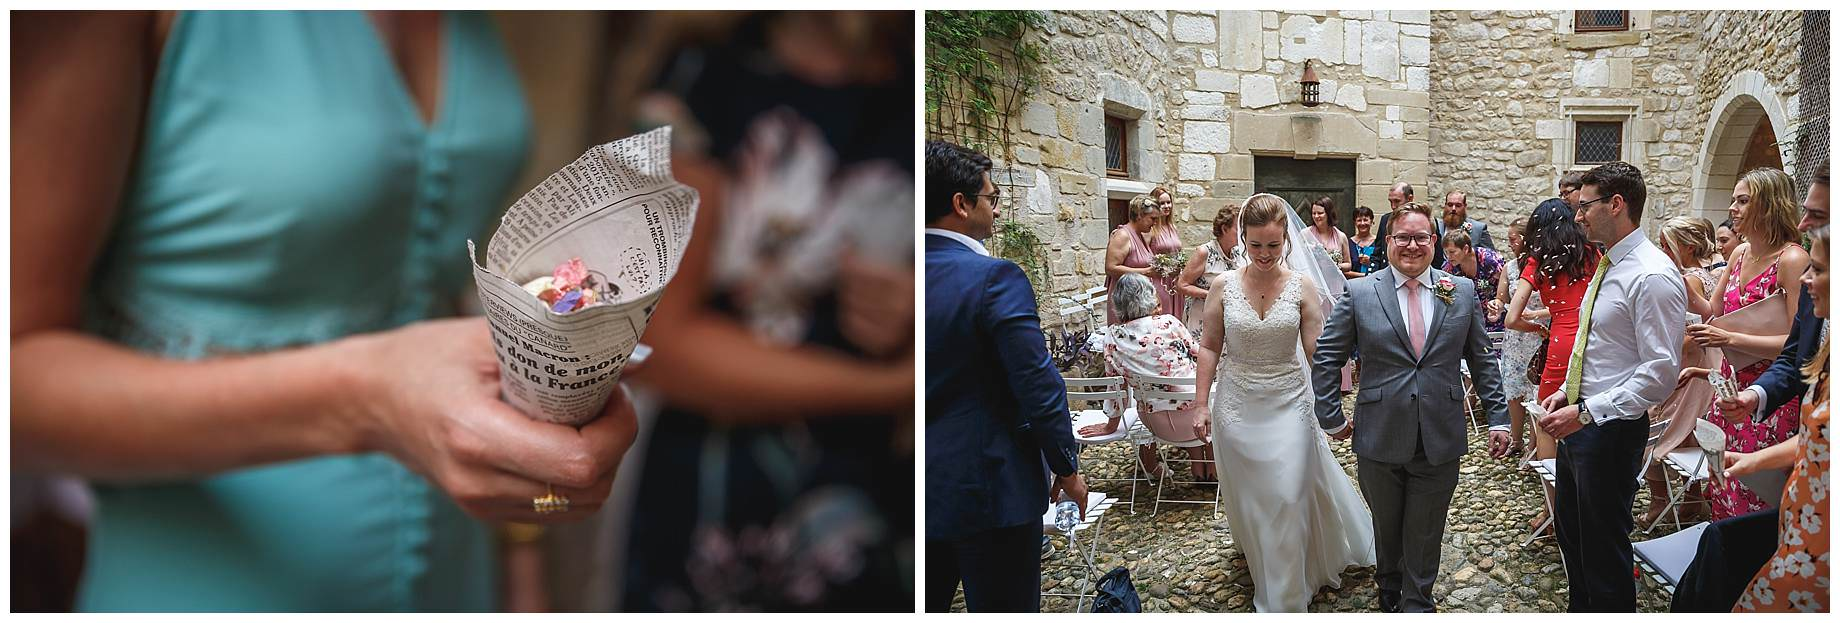 confetti at Chateau Brametourte Wedding